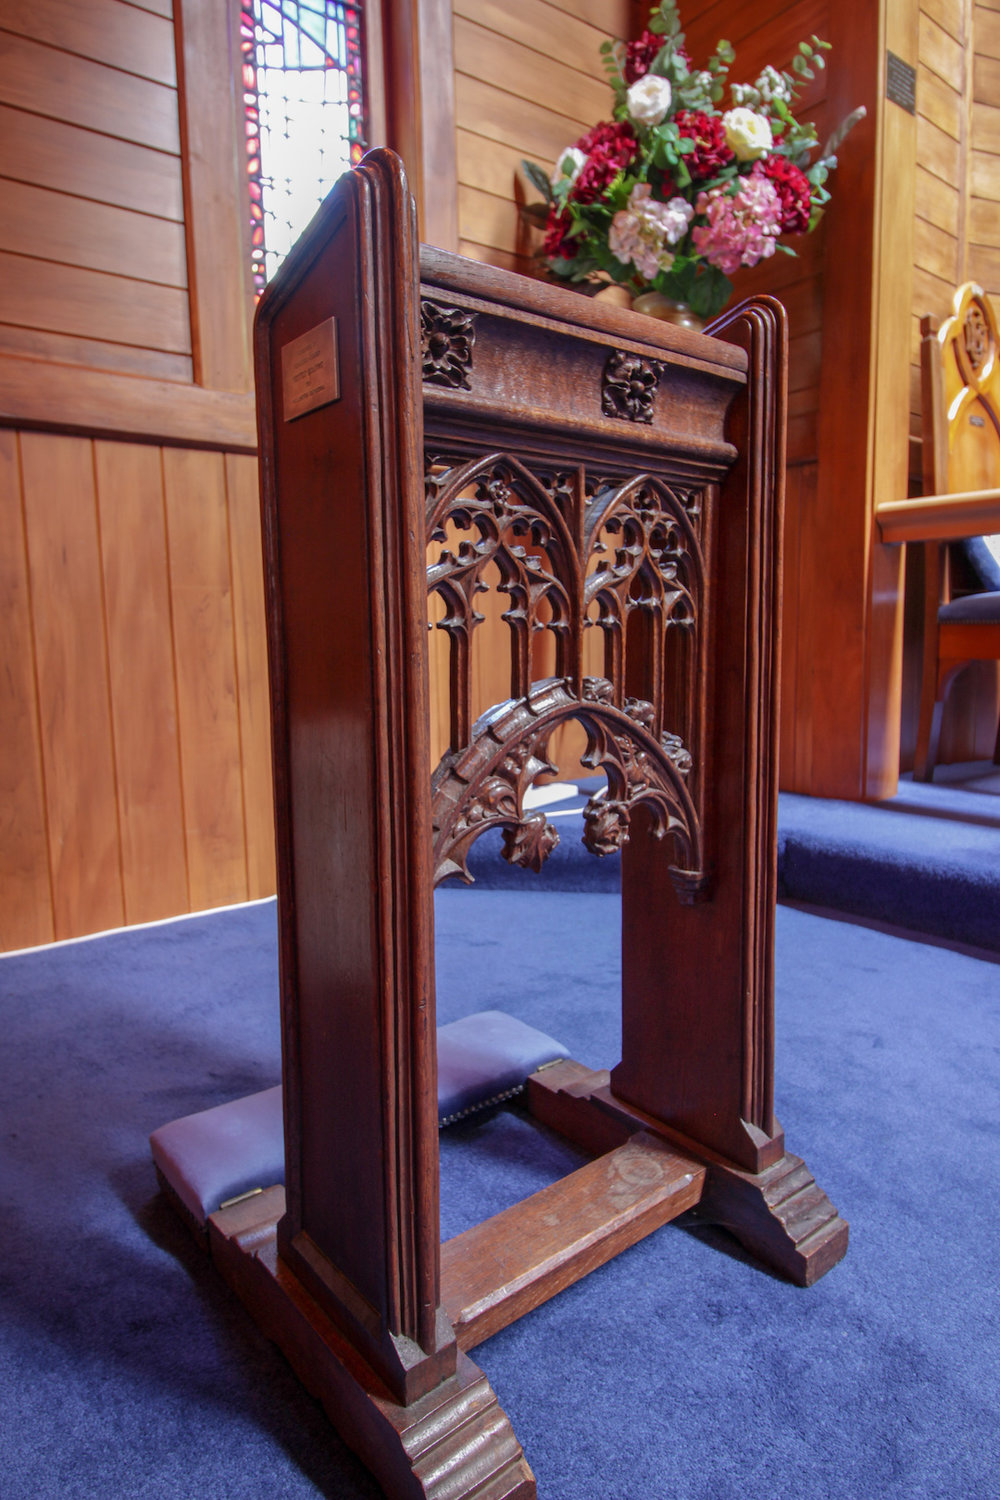 lady-chapel-litany-prayer-desk.jpg